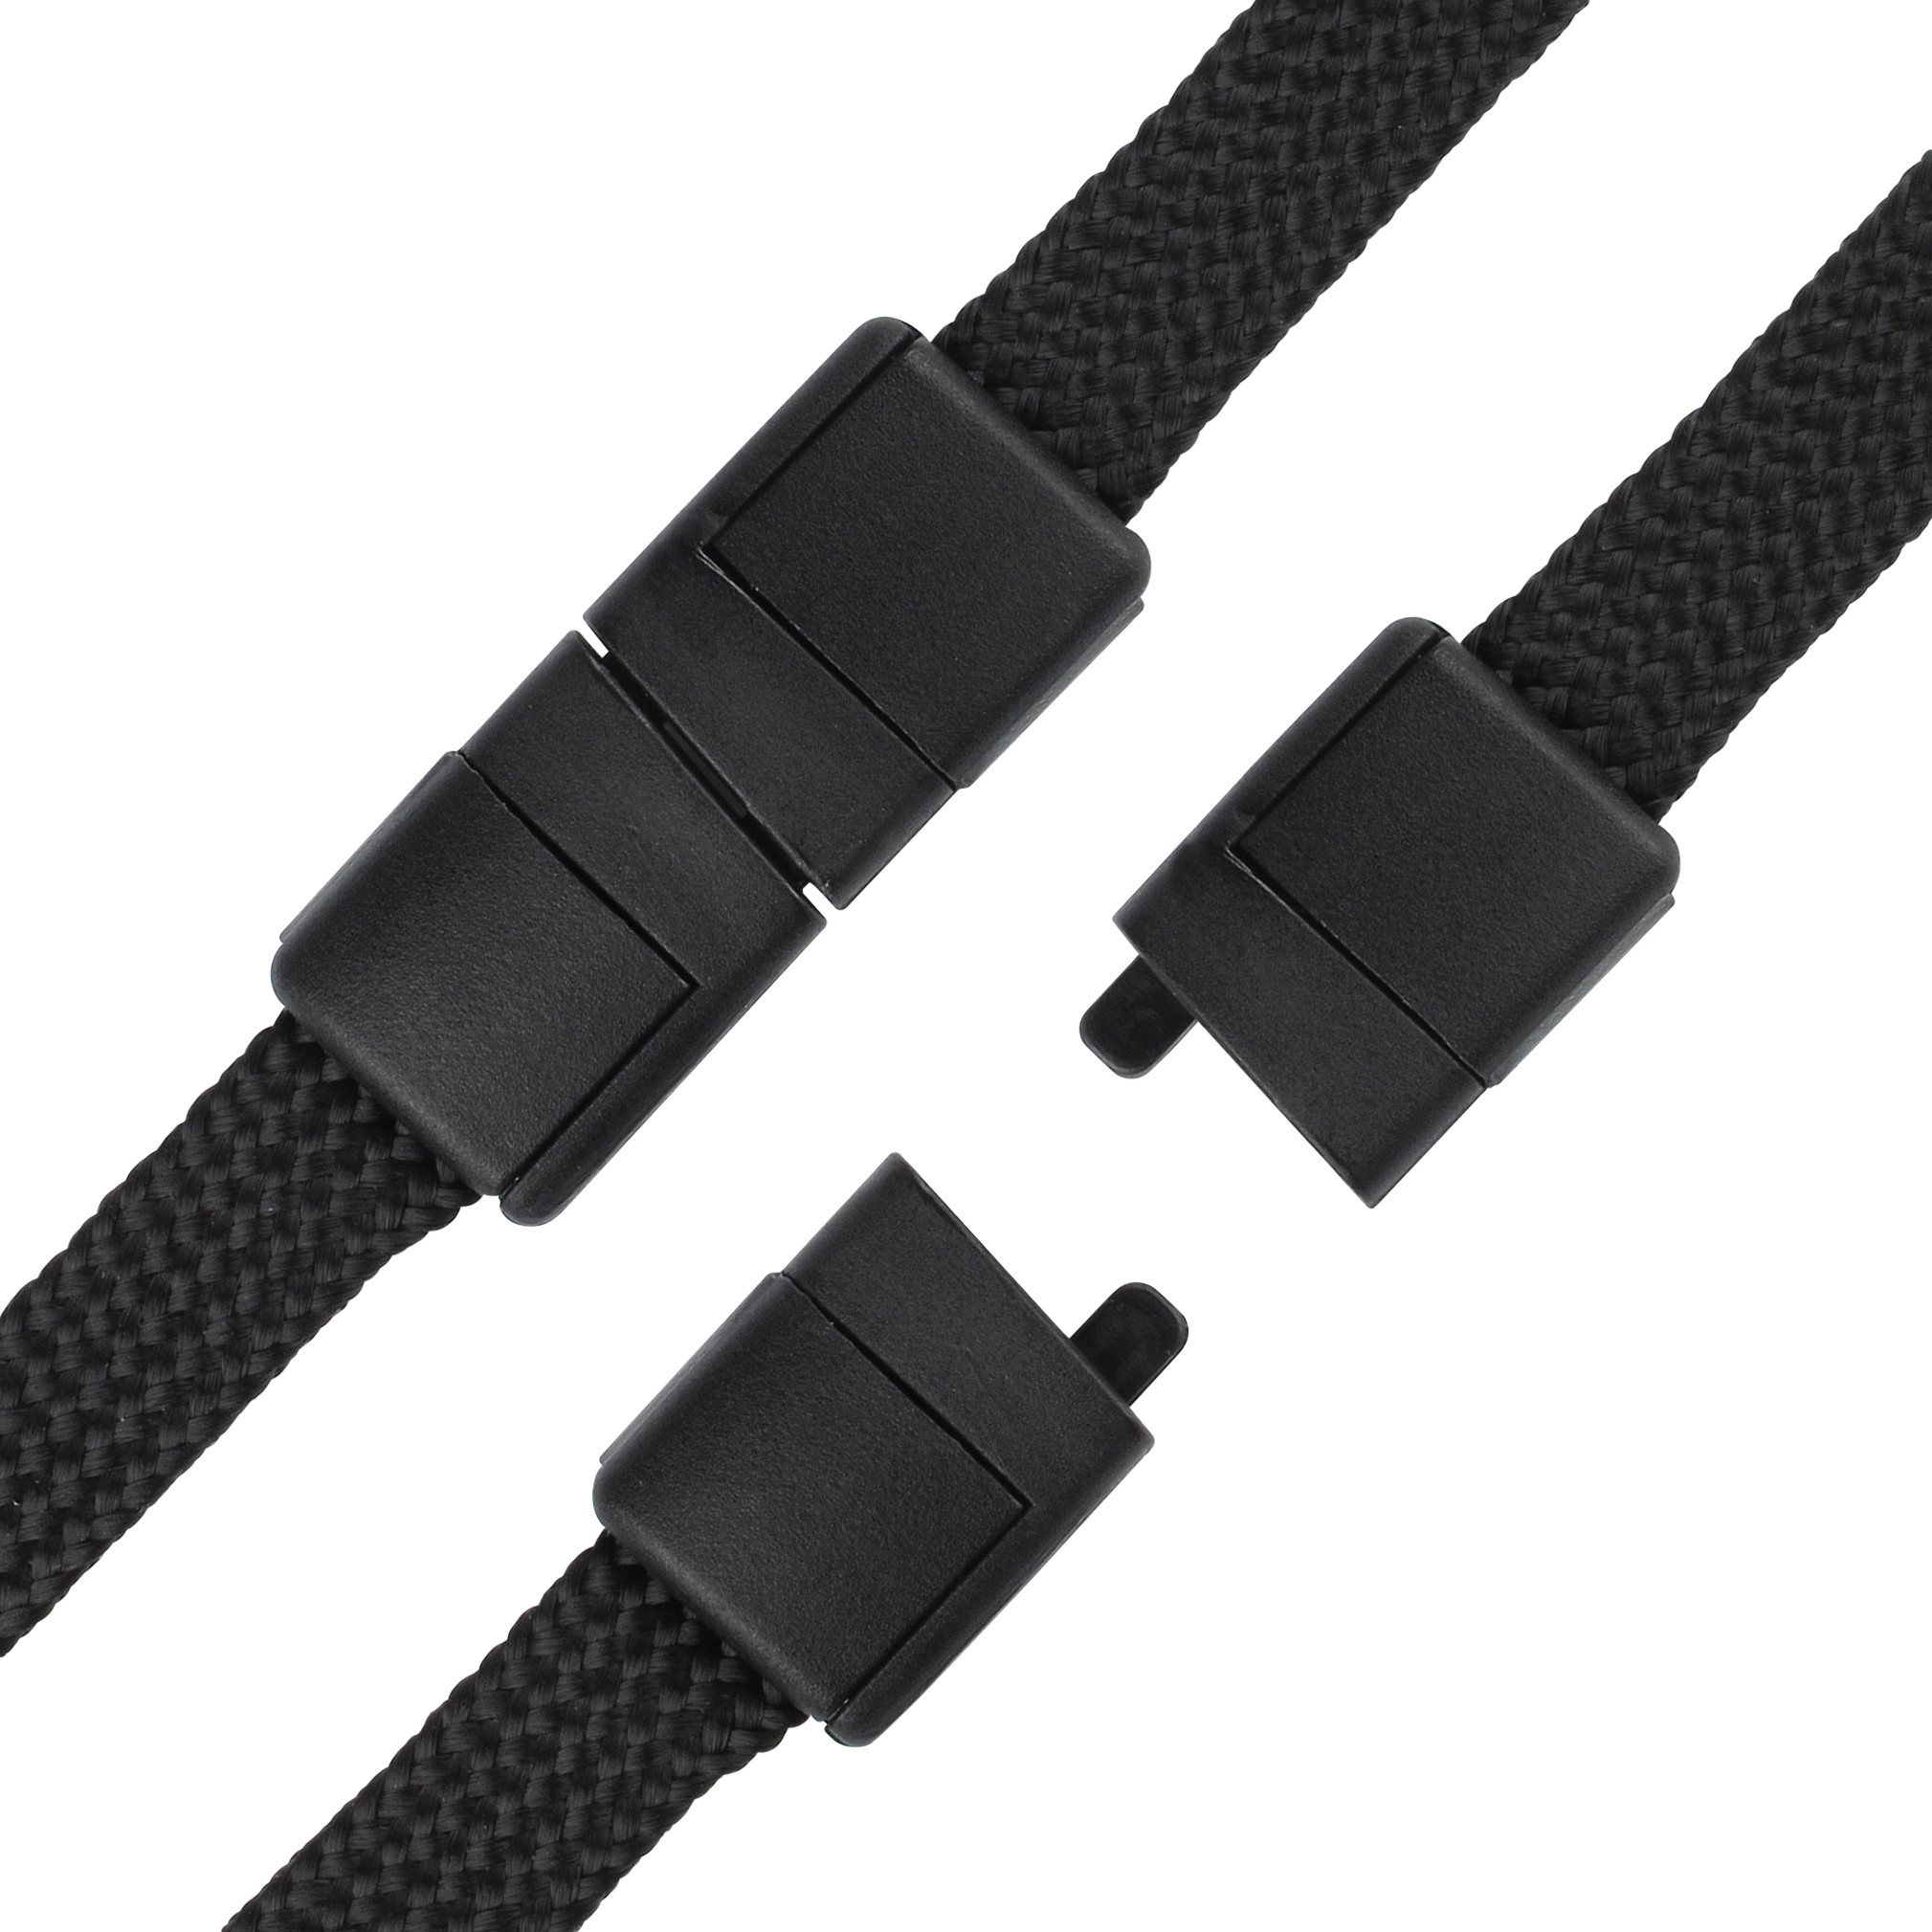 10 Pack Black Lanyards with Safety Breakaway Clasp /& Bulldog Clip